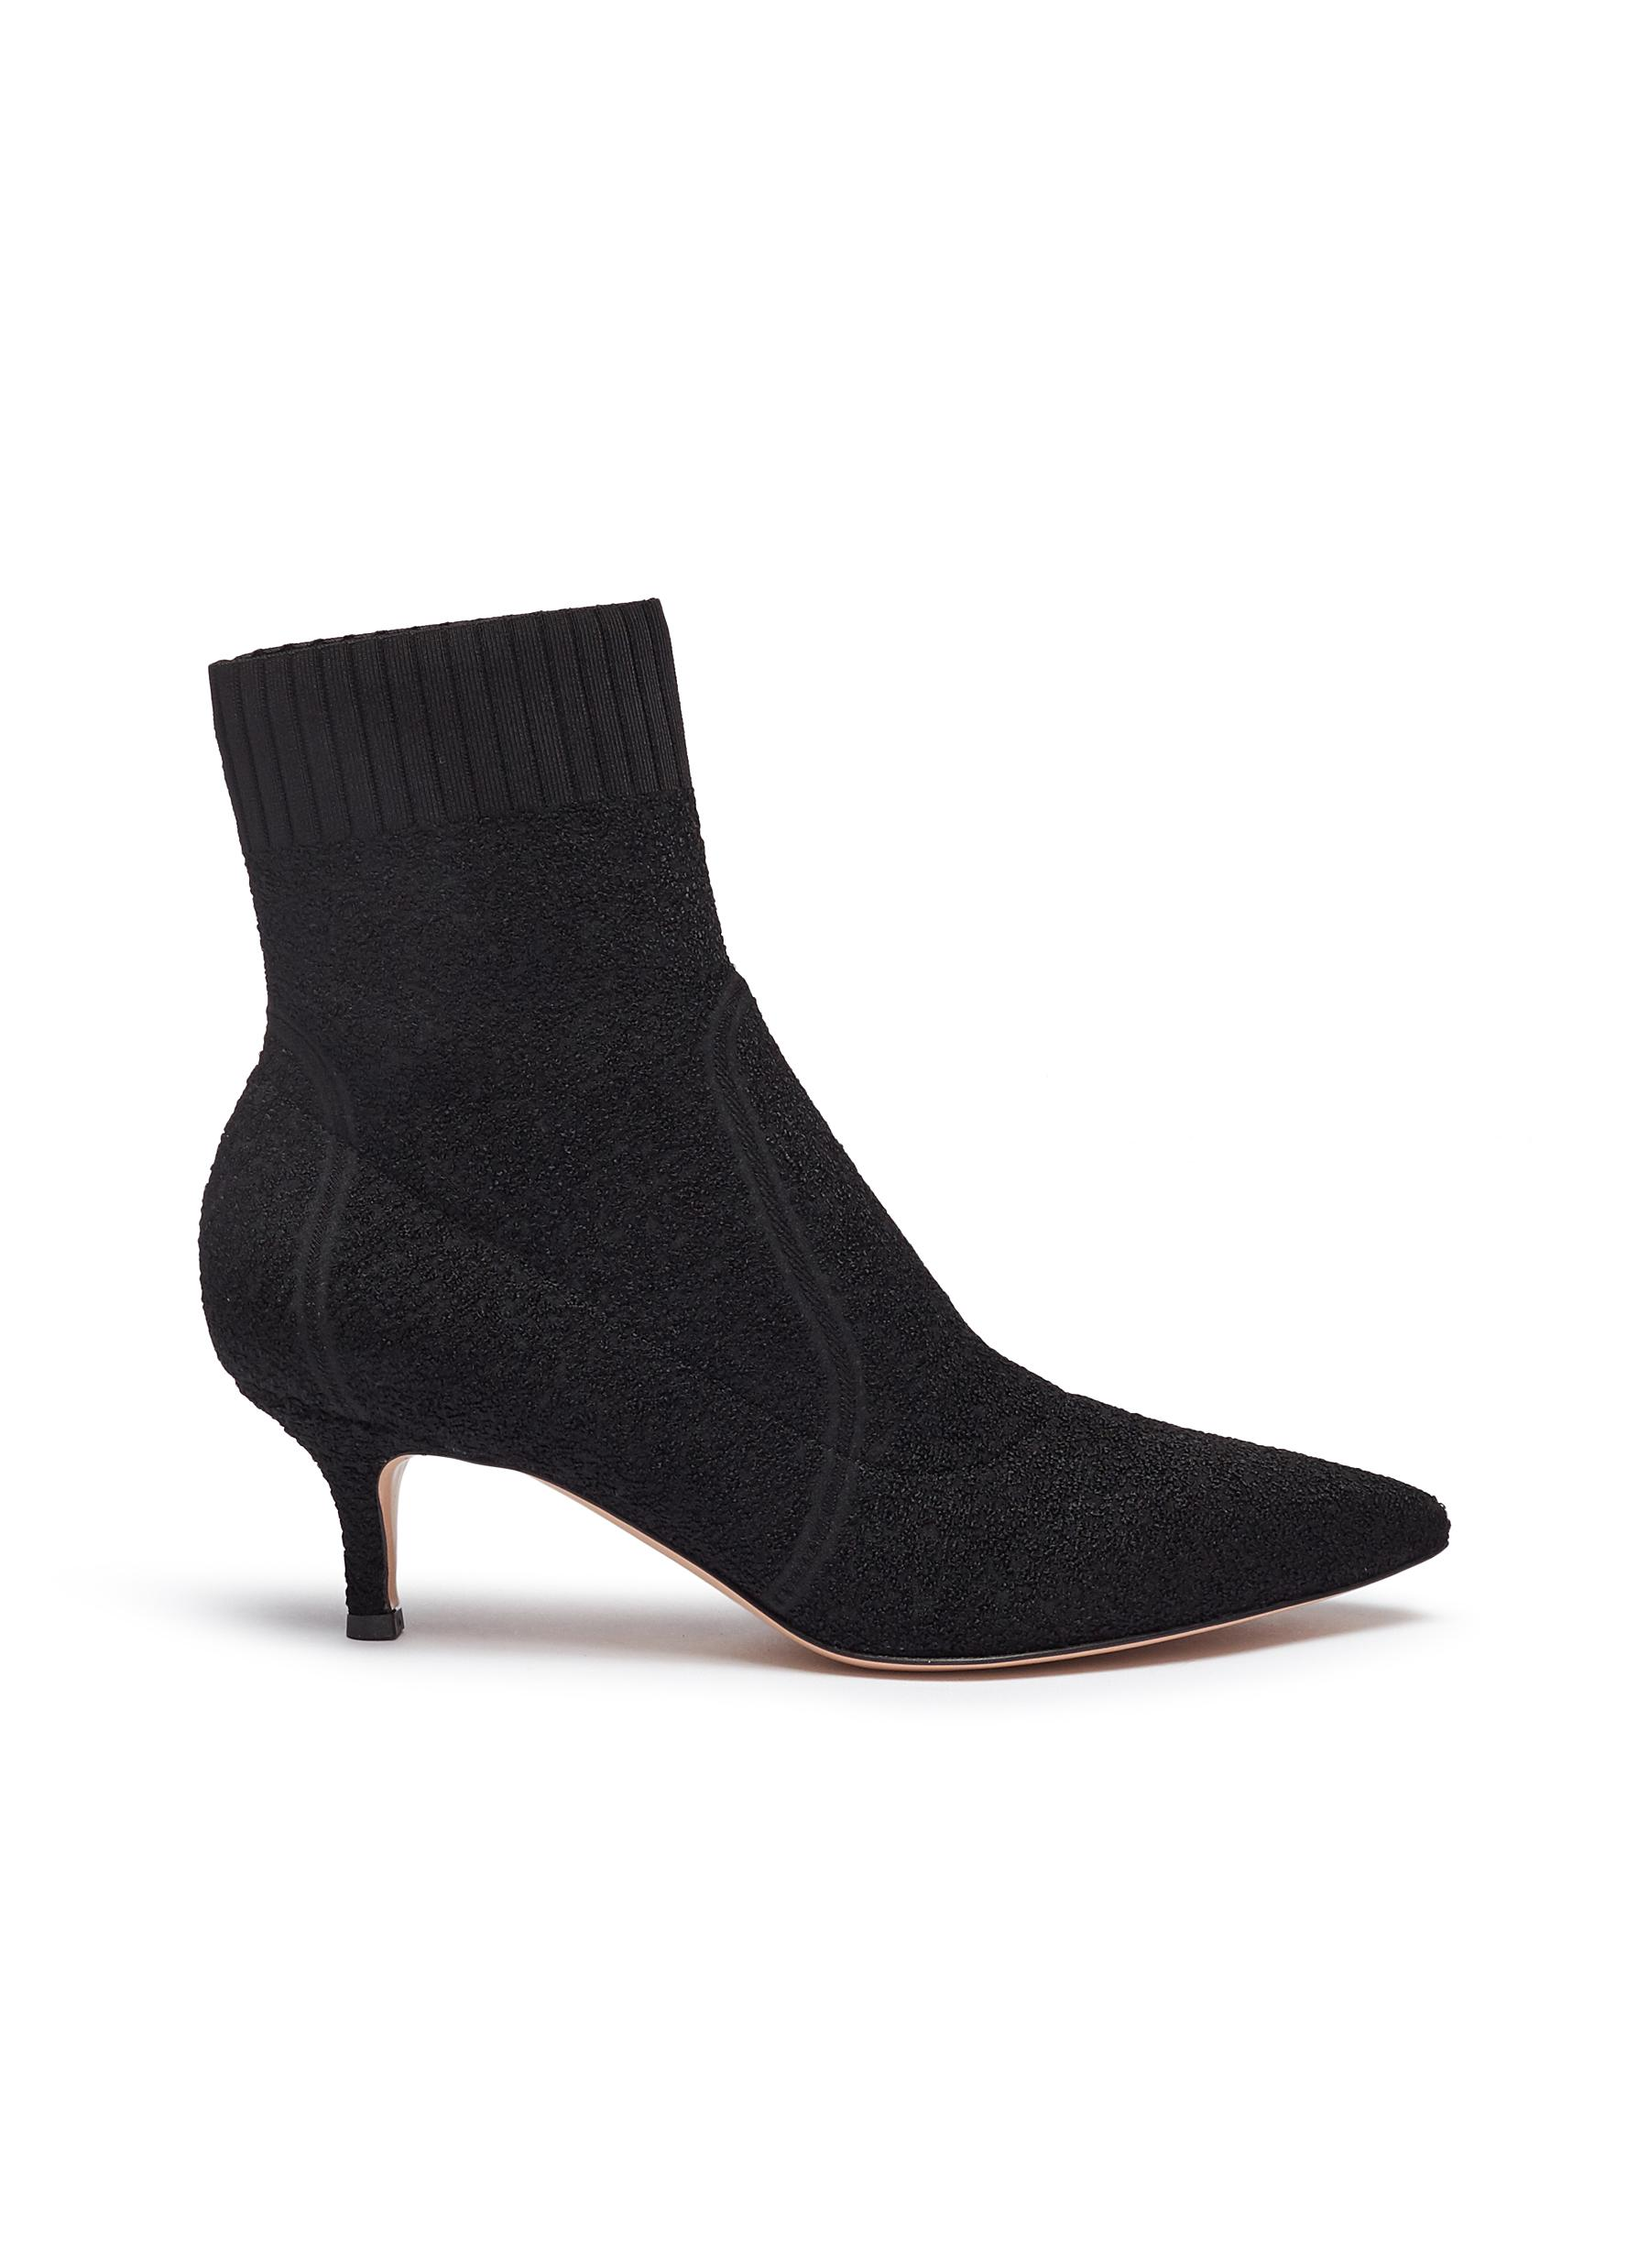 Bouclé knit sock boots by Gianvito Rossi